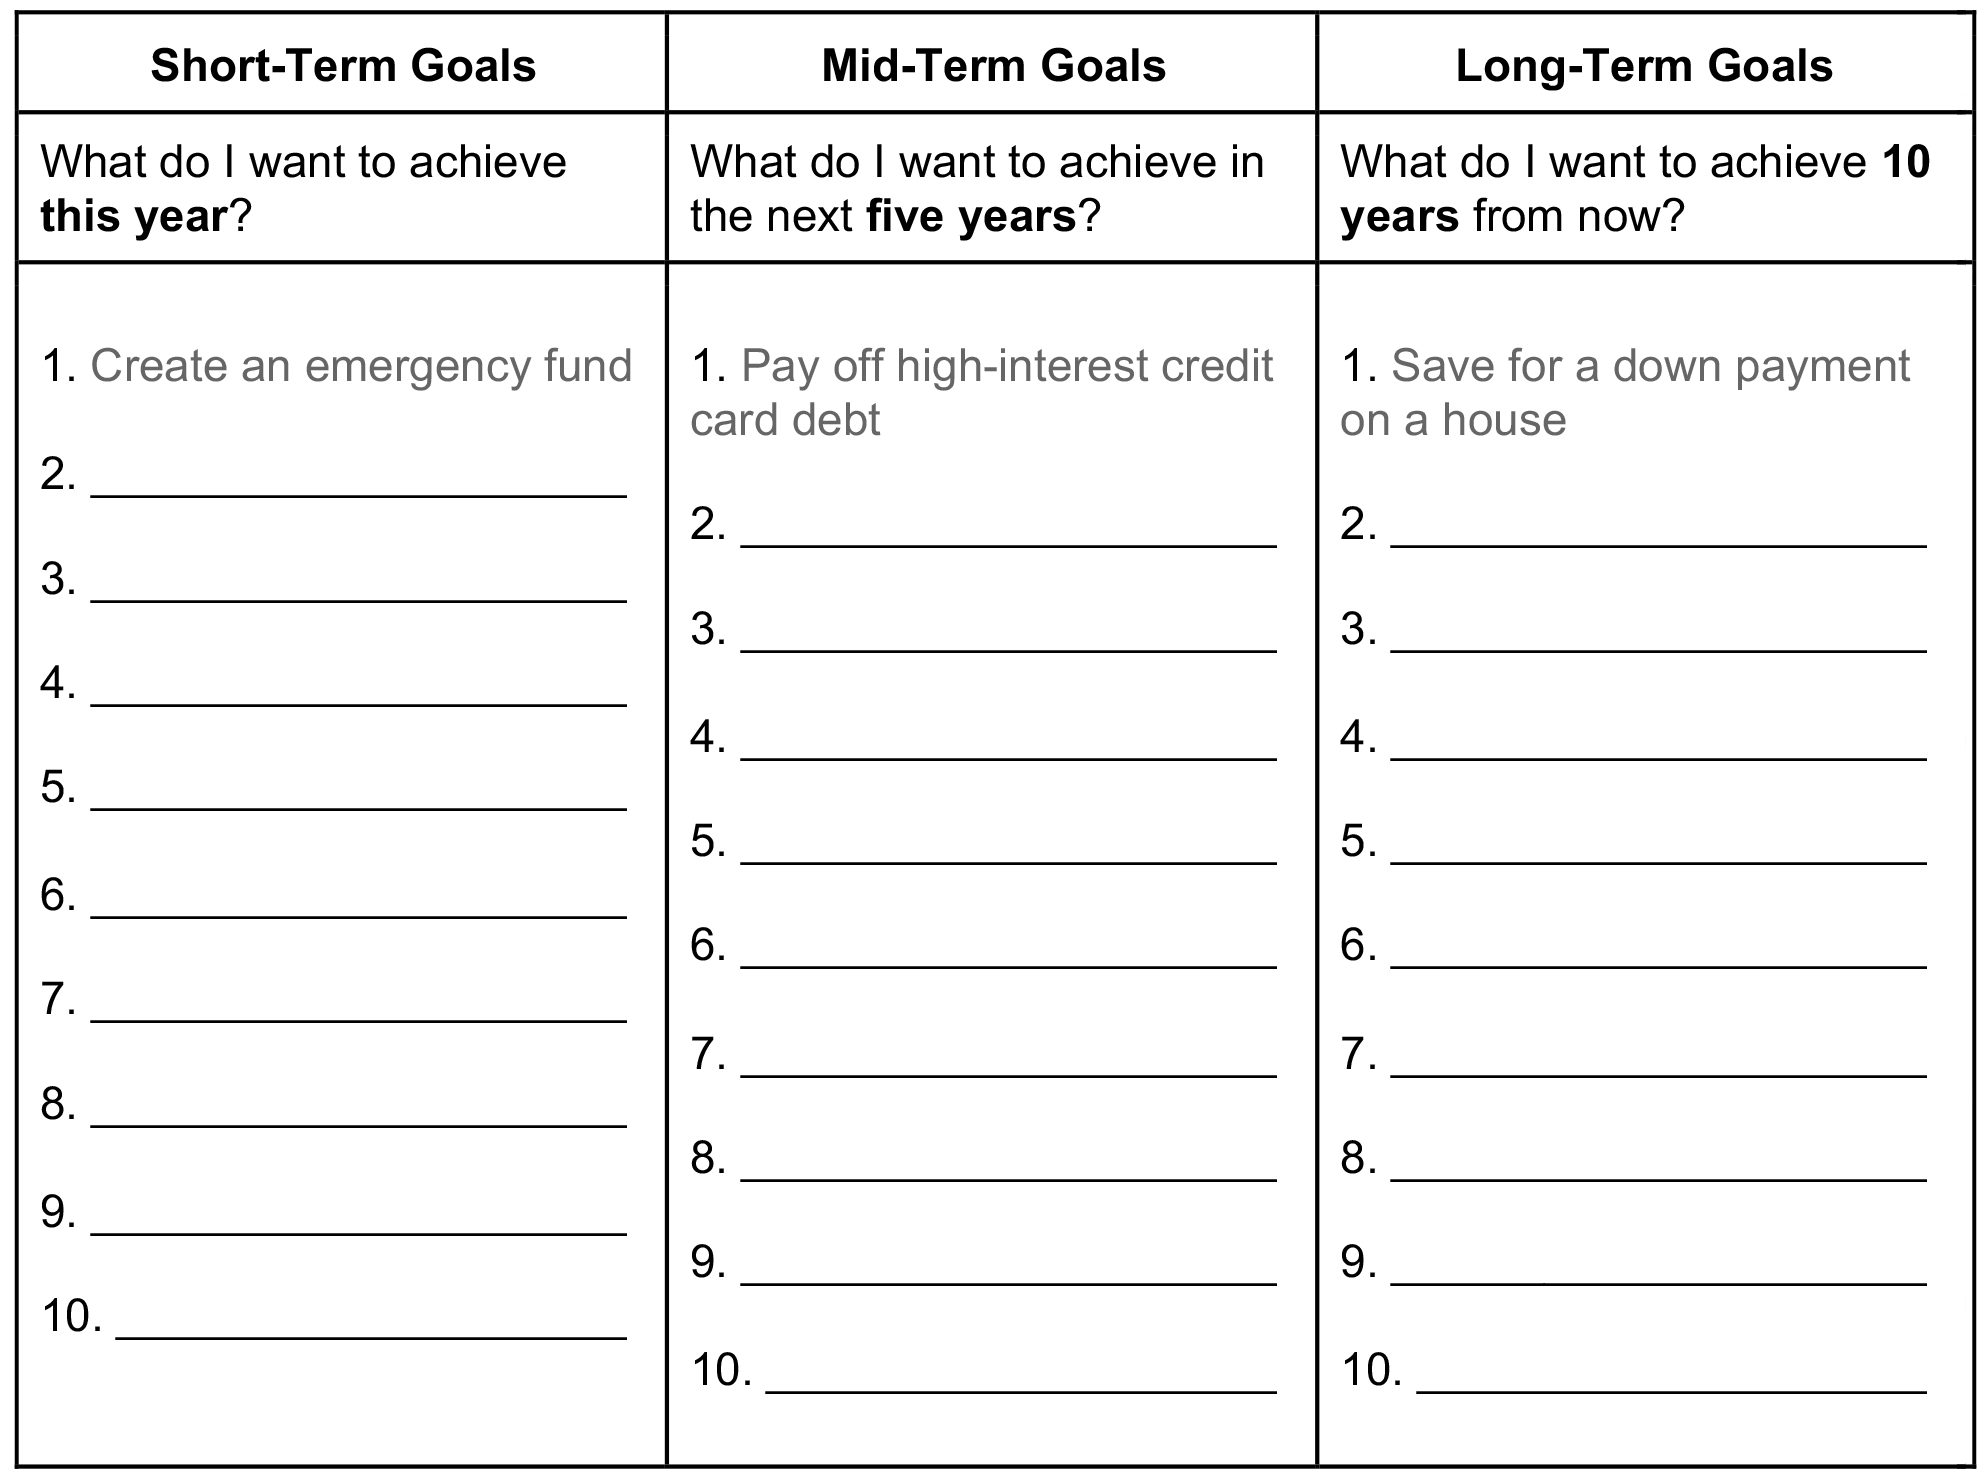 An example worksheet of short-term, mid-term, and long-term goals